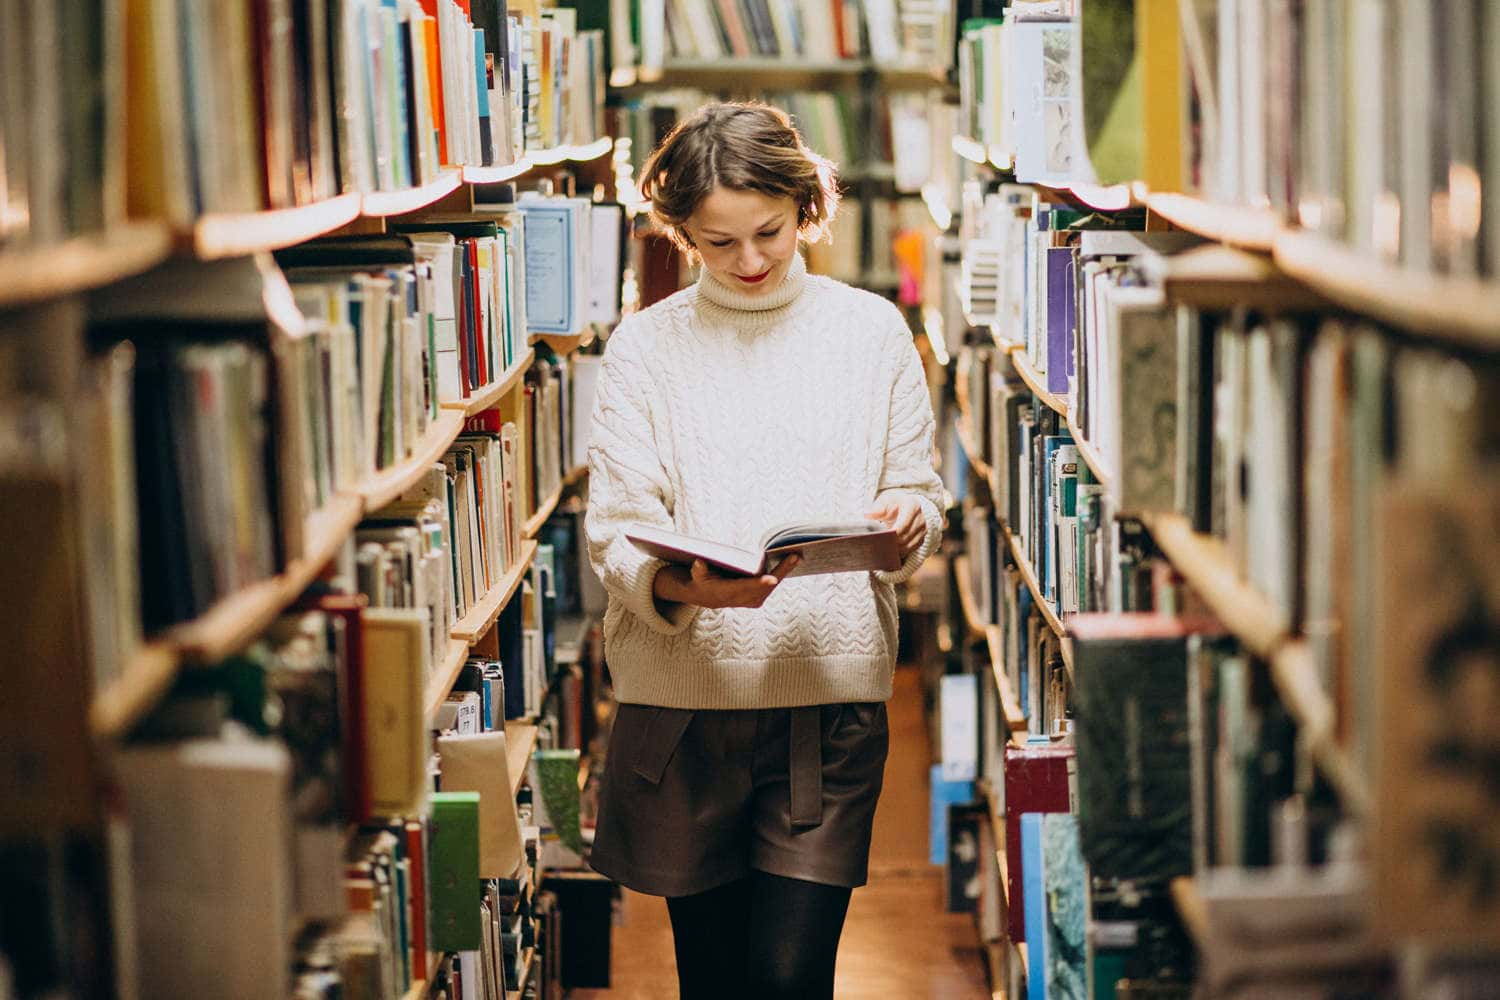 young-woman-studying-library